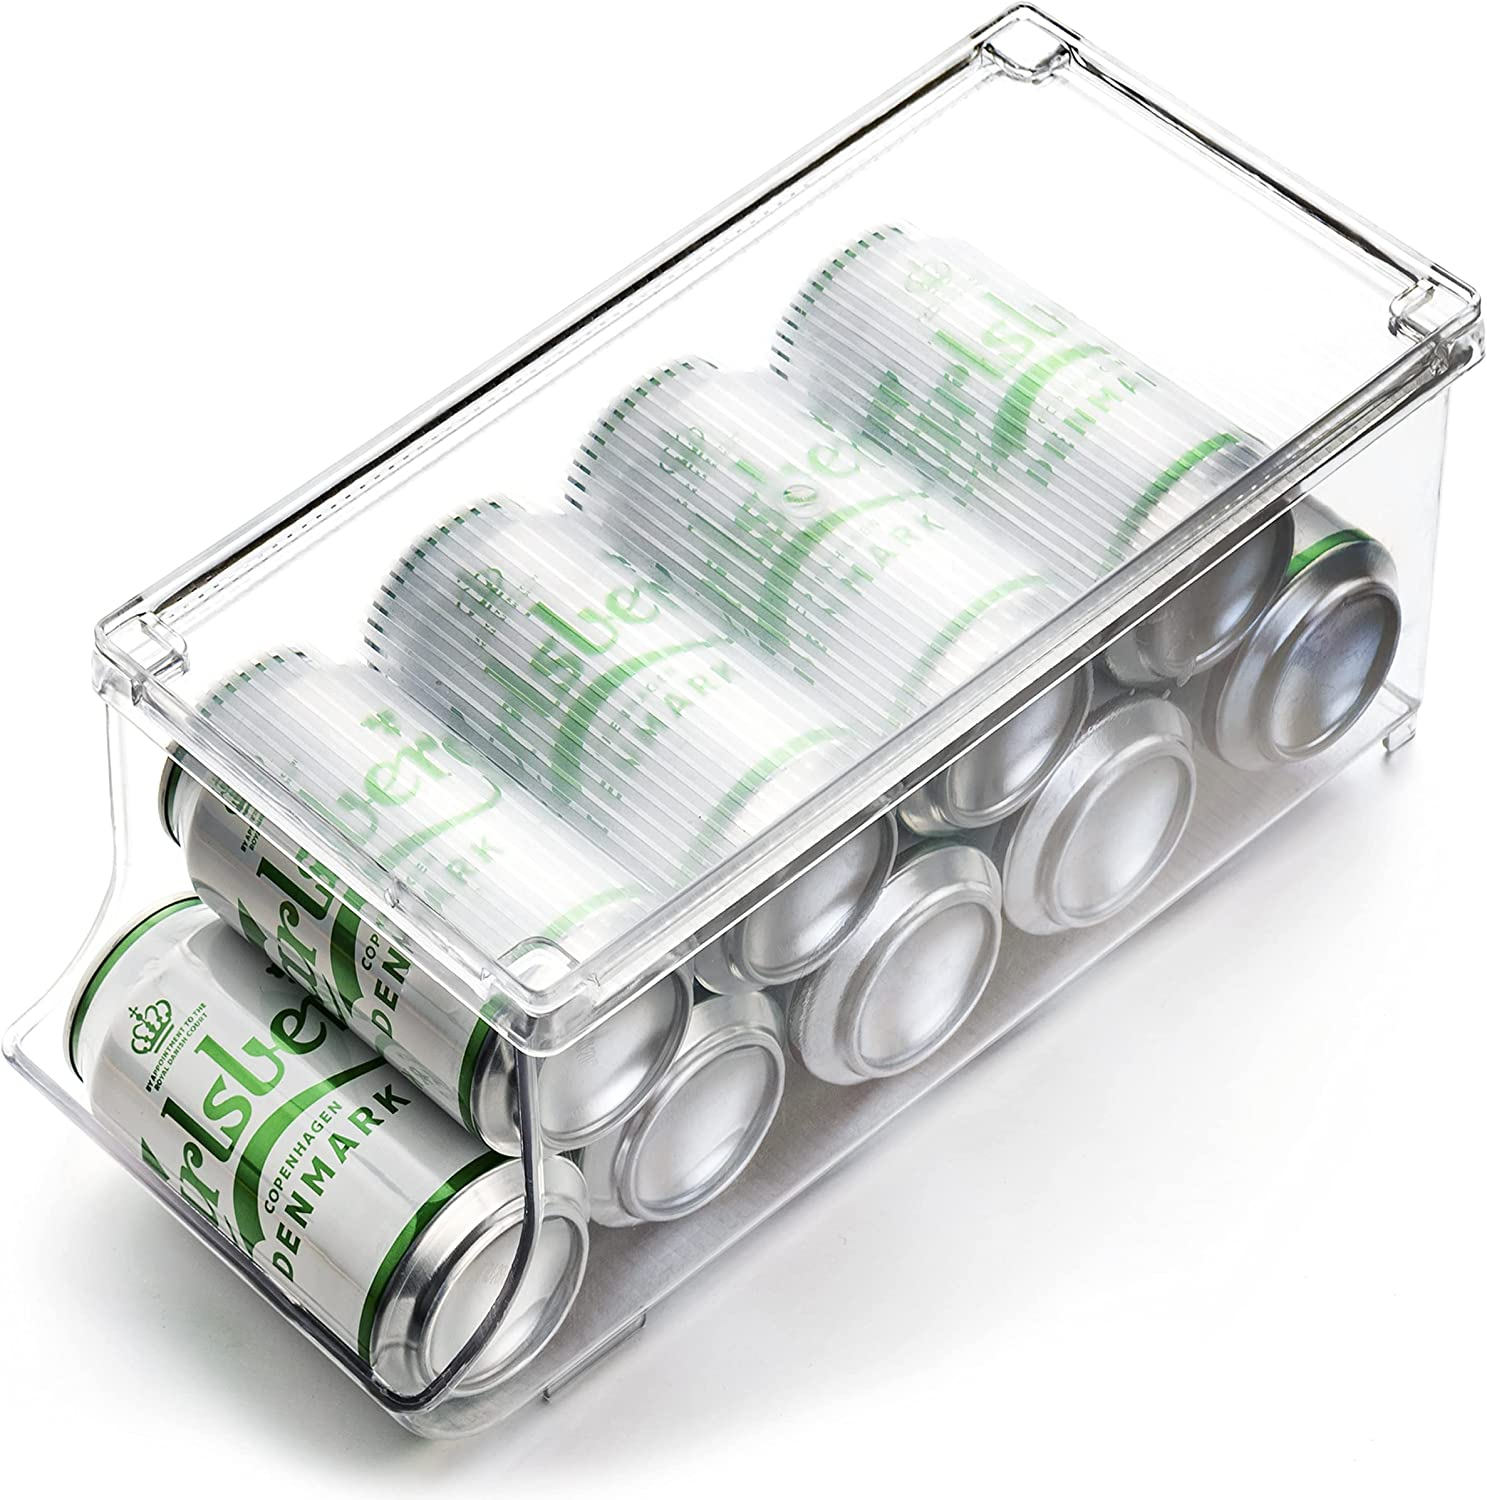 Set of 1- JinaMart Refrigerator Organizer Bin Pop Soda Can Beverage Holder for Fridge, Kitchen, Countertops, Cabinets, Clear Plastic Can Dispenser and Canned Food Pantry Storage Rack(With Lid)